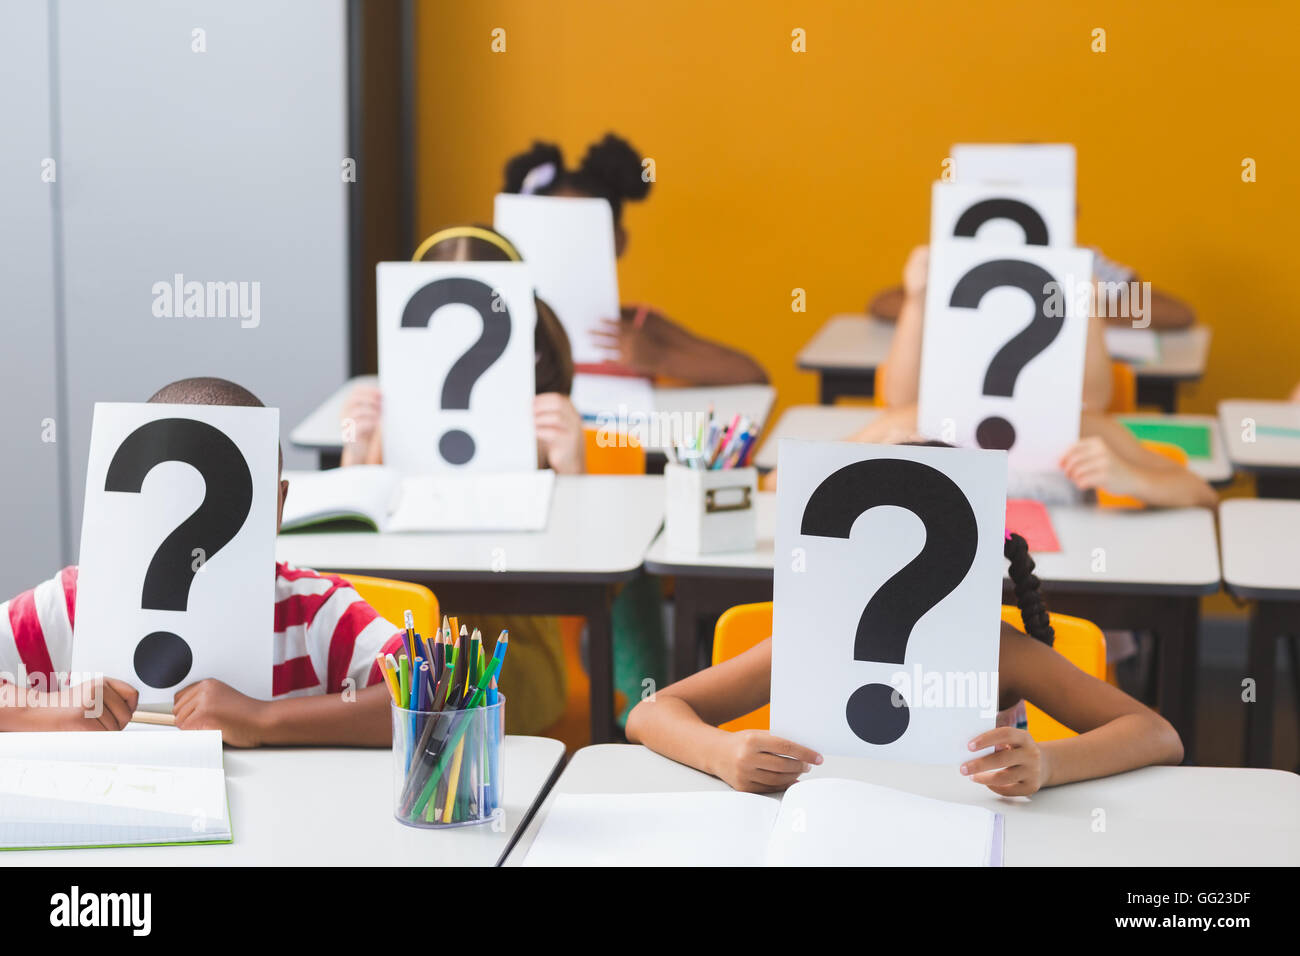 School kids covering their face with question mark sign - Stock Image